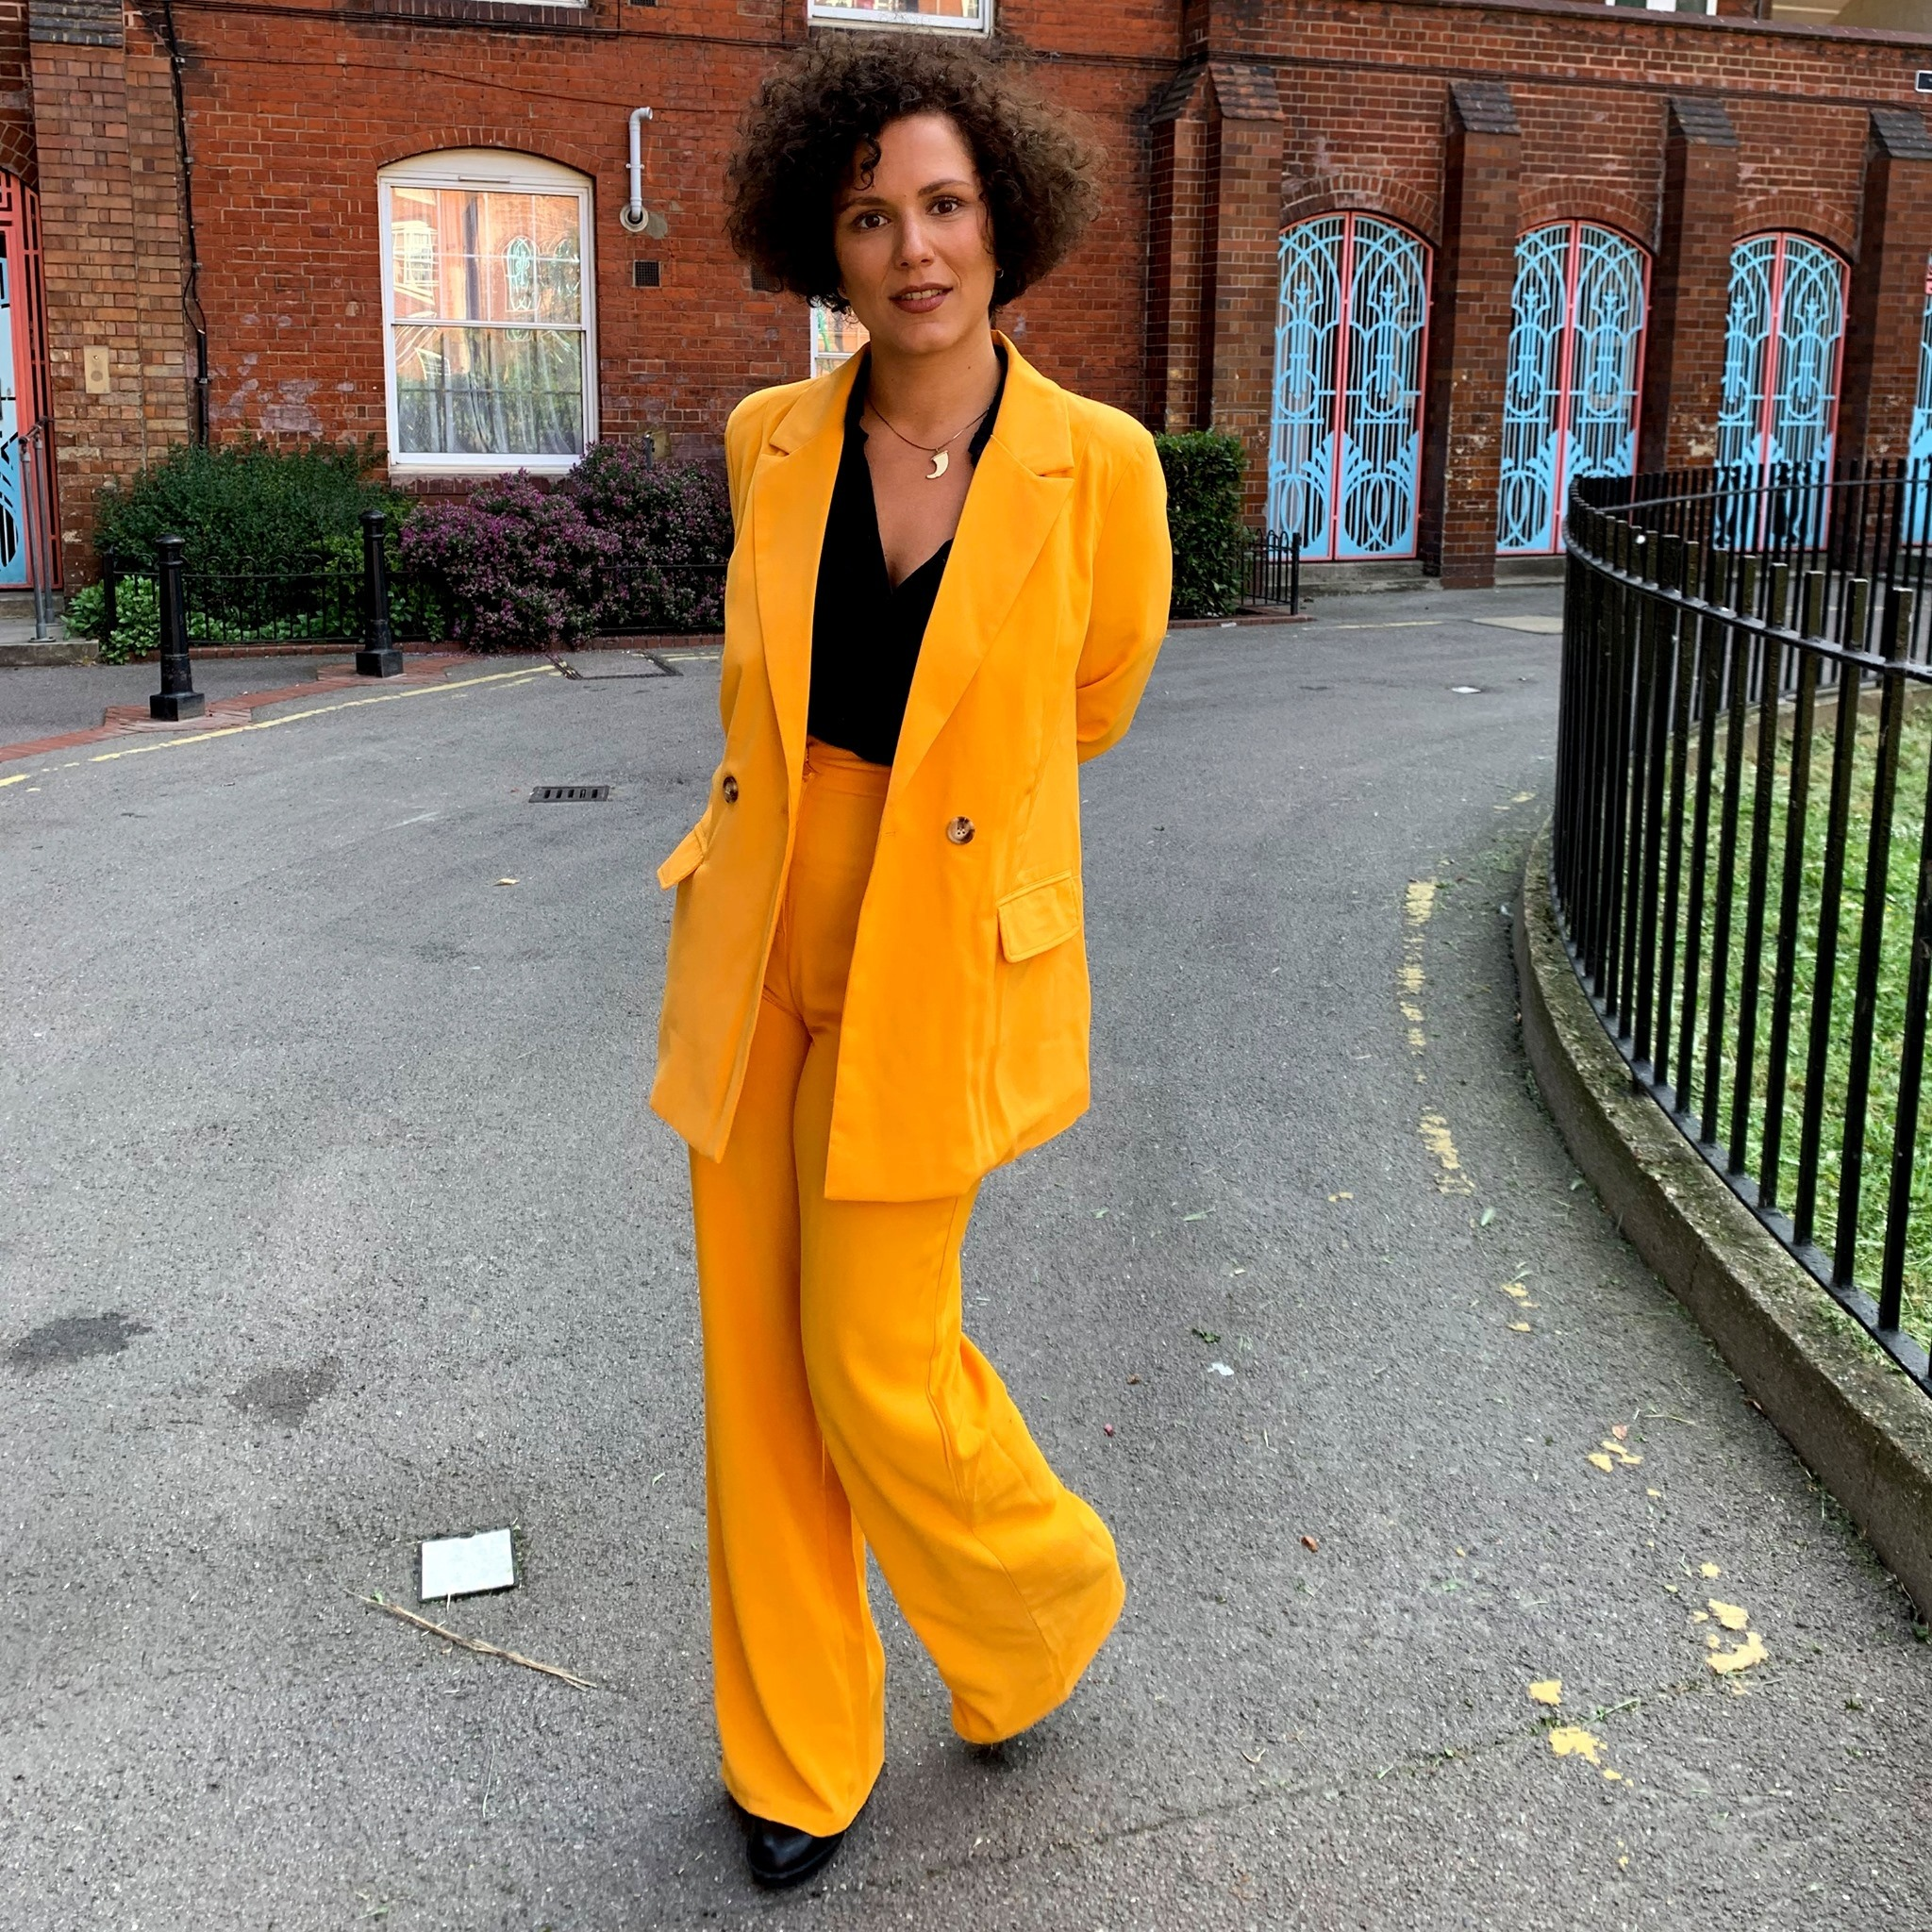 Right before the convocation ceremony at the Royal College of Art; I don't often dress up, but when I do, I make sure it's a bright yellow suit.